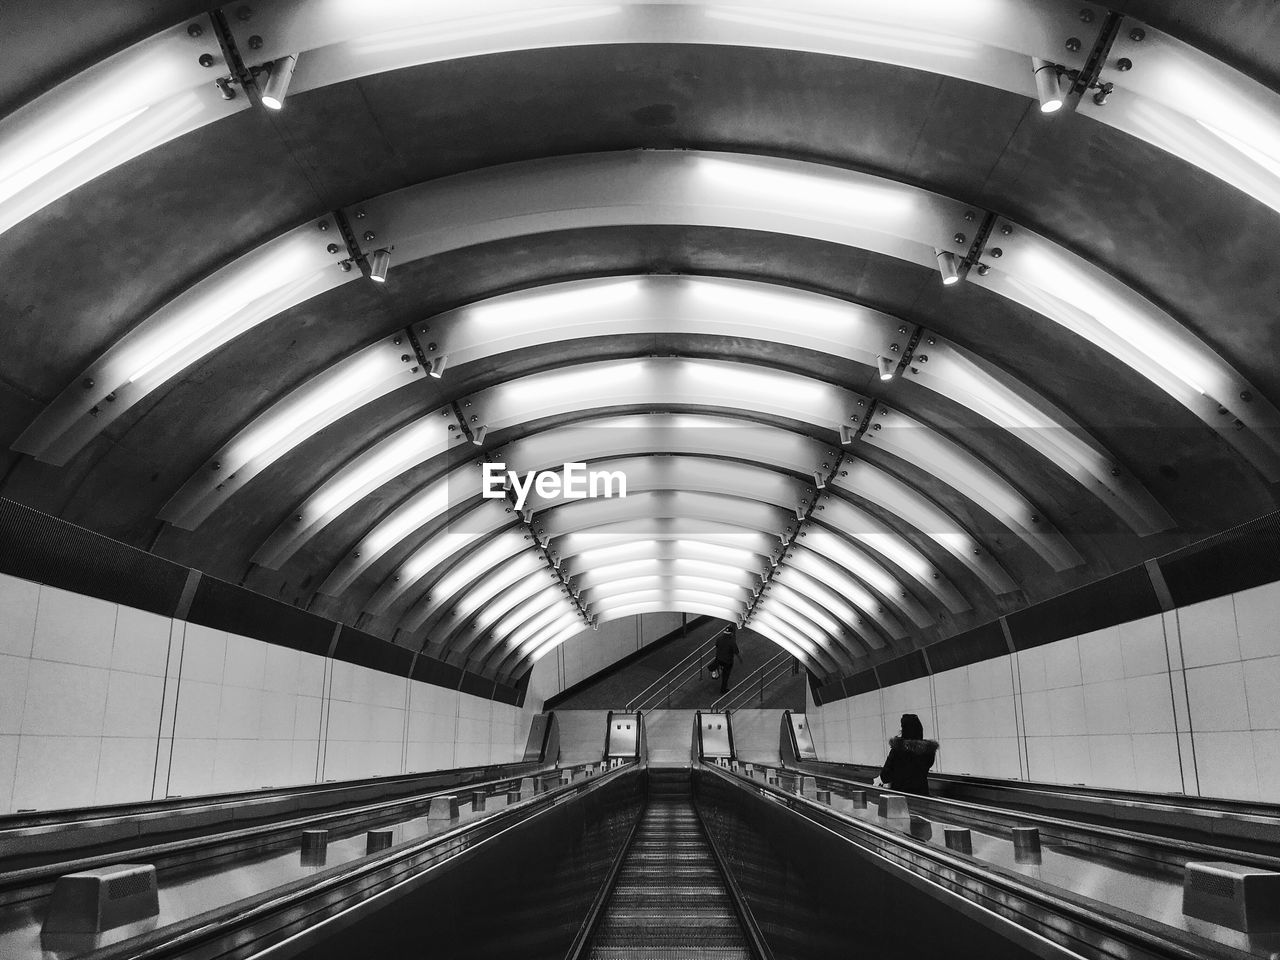 architecture, indoors, transportation, the way forward, built structure, direction, ceiling, diminishing perspective, incidental people, illuminated, subway station, real people, public transportation, arch, subway, walking, modern, technology, travel, railing, moving walkway